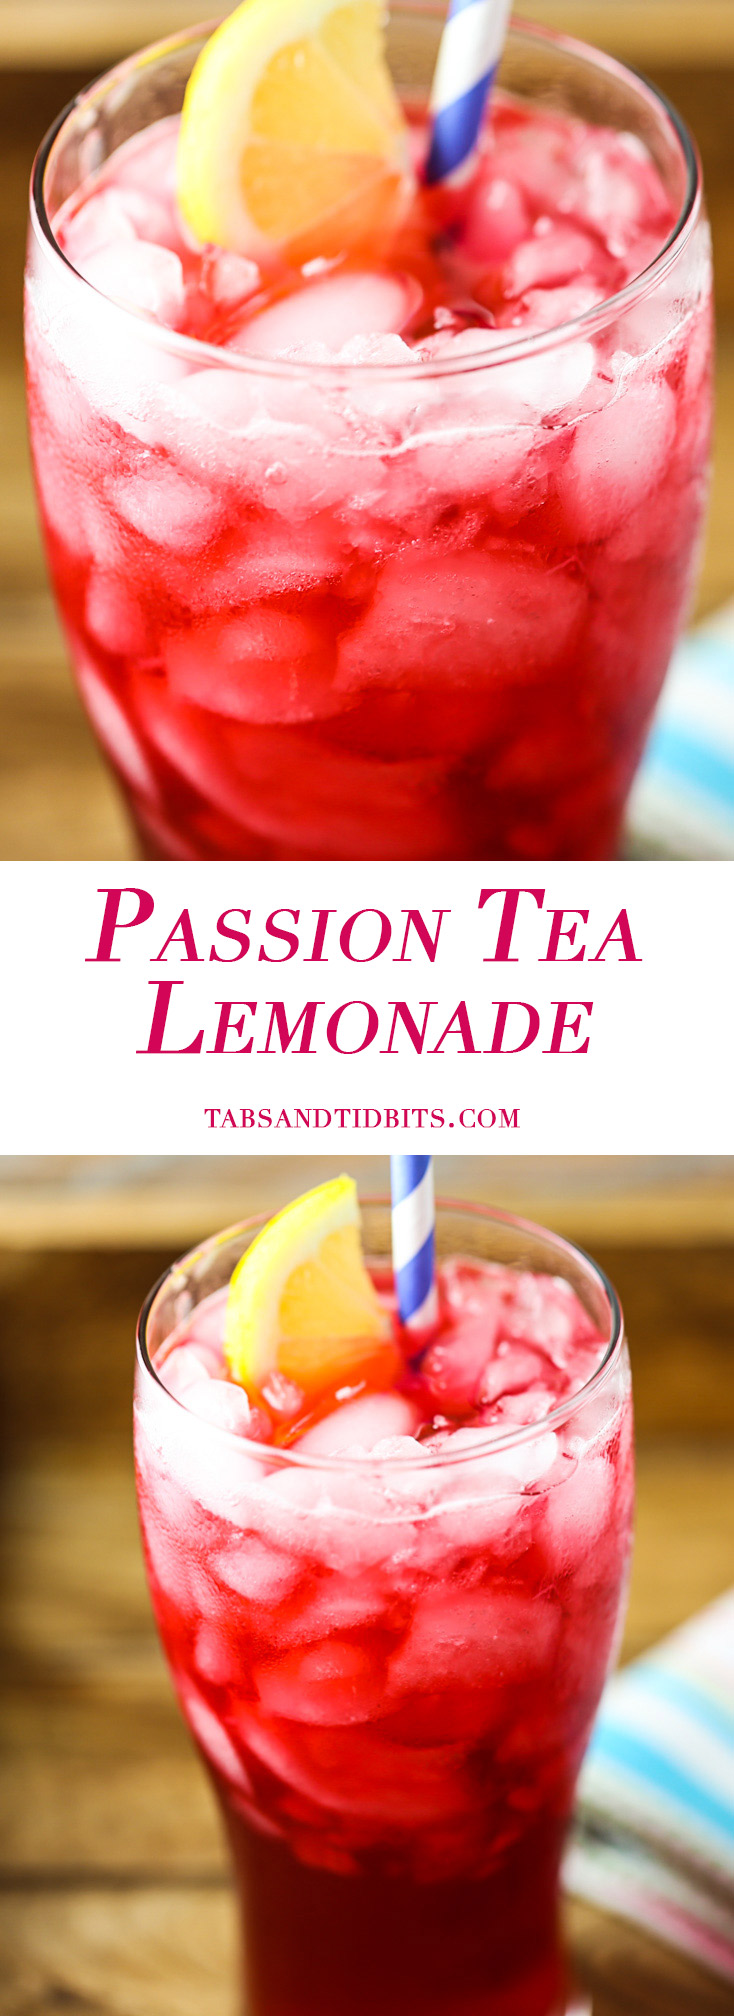 Passion Tea Lemonade - Passion Tea mixed with lemonade making for a refreshing drink.